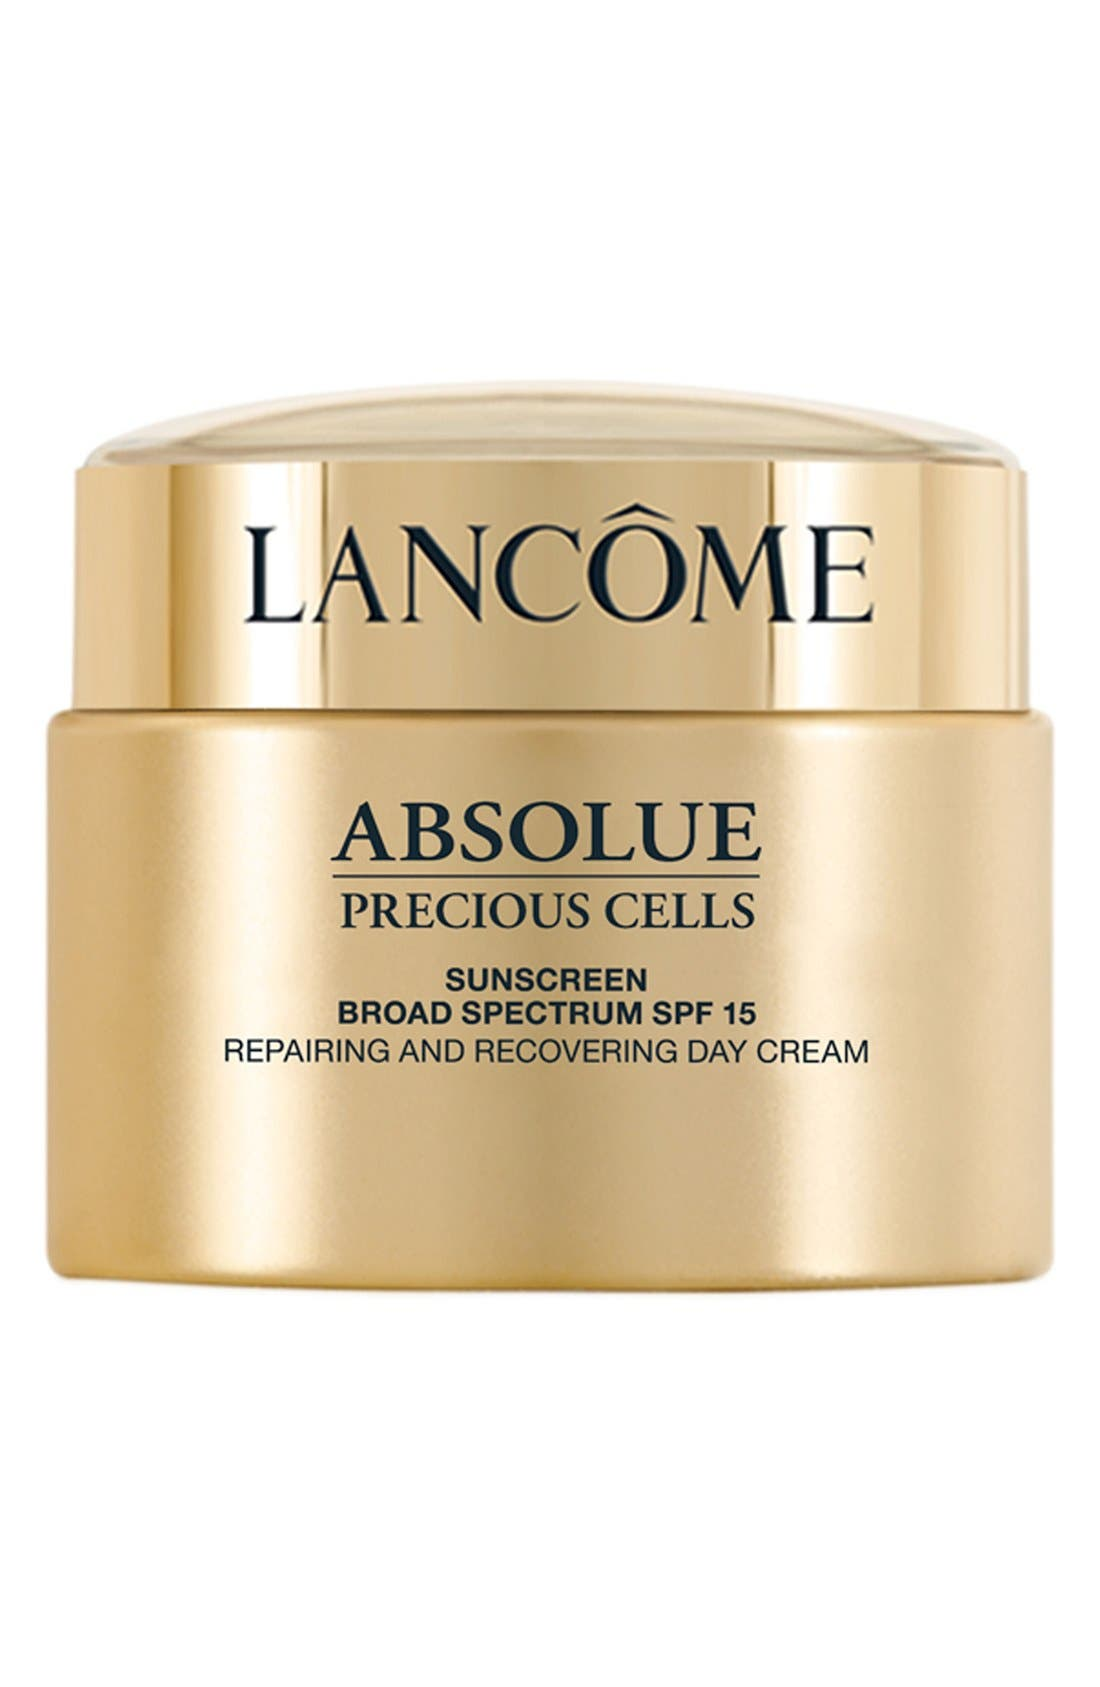 Absolue Precious Cells SPF 15 Repairing and Recovering Moisturizer Cream,                             Main thumbnail 1, color,                             NO COLOR